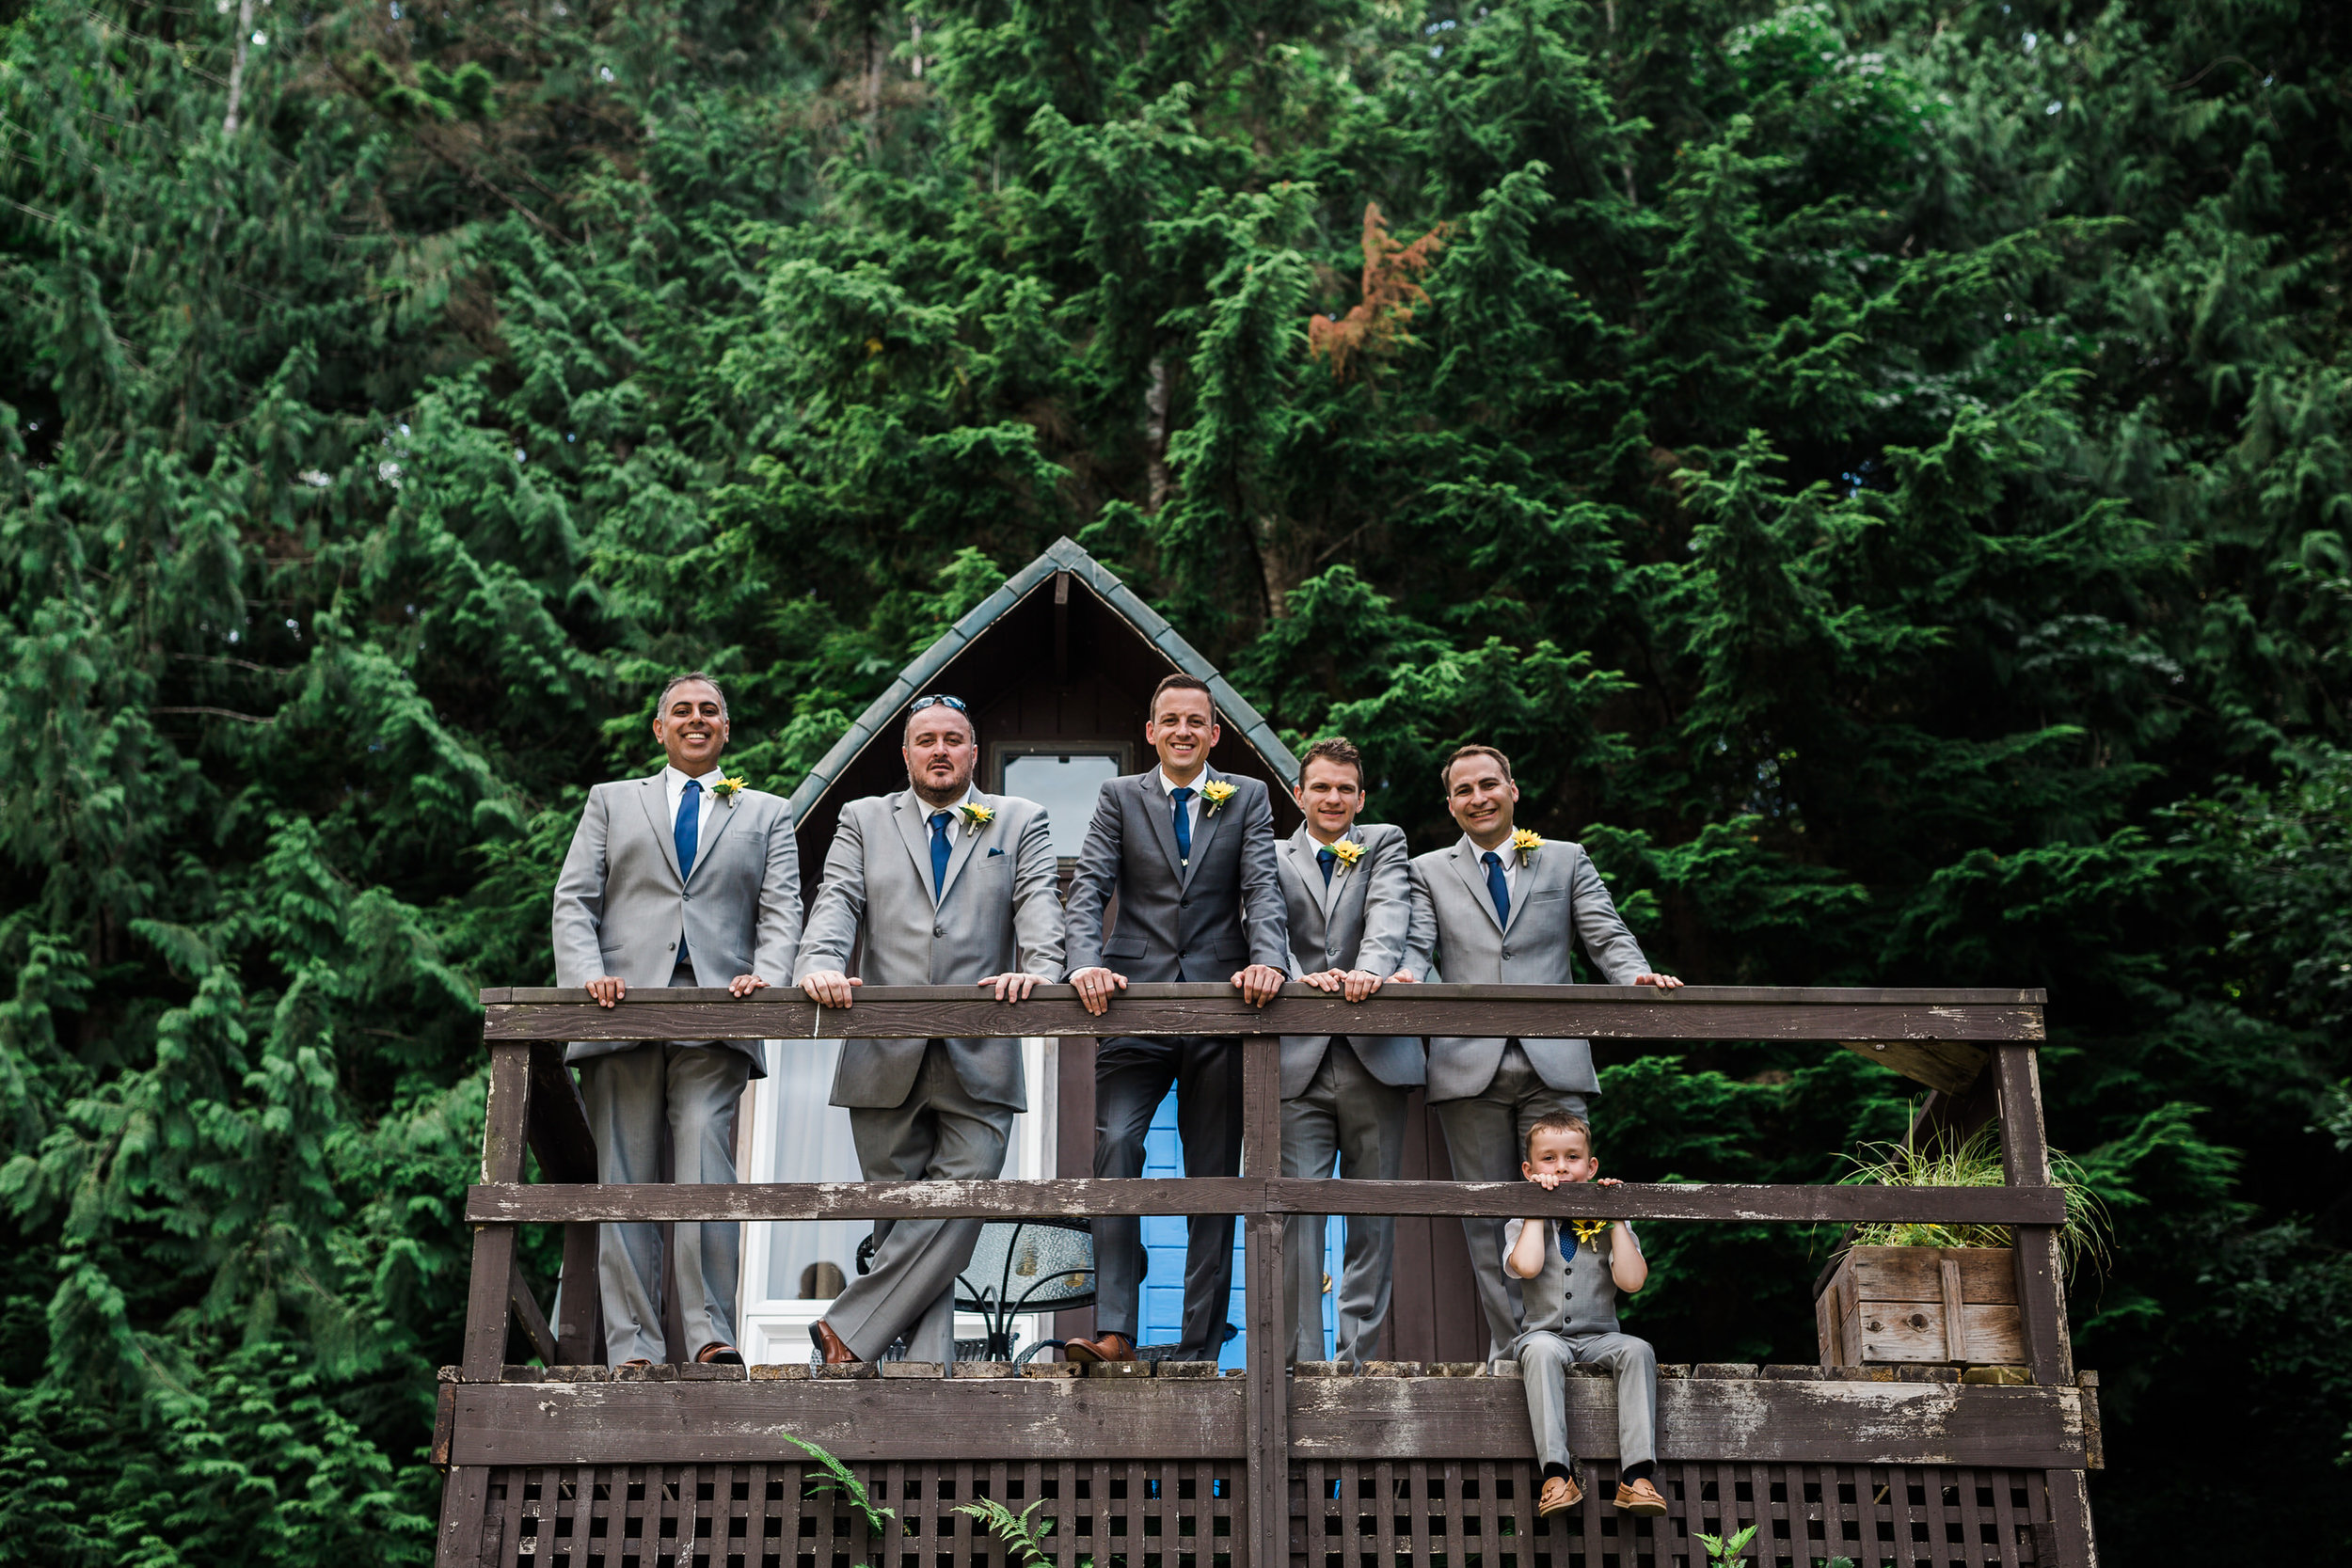 West Coast Wilderness Lodge Wedding Photos - Vancouver Wedding Photographer & Videographer - Sunshine Coast Wedding Photos - Sunshine Coast Wedding Photographer - Jennifer Picard Photography - IMG_9195.jpg